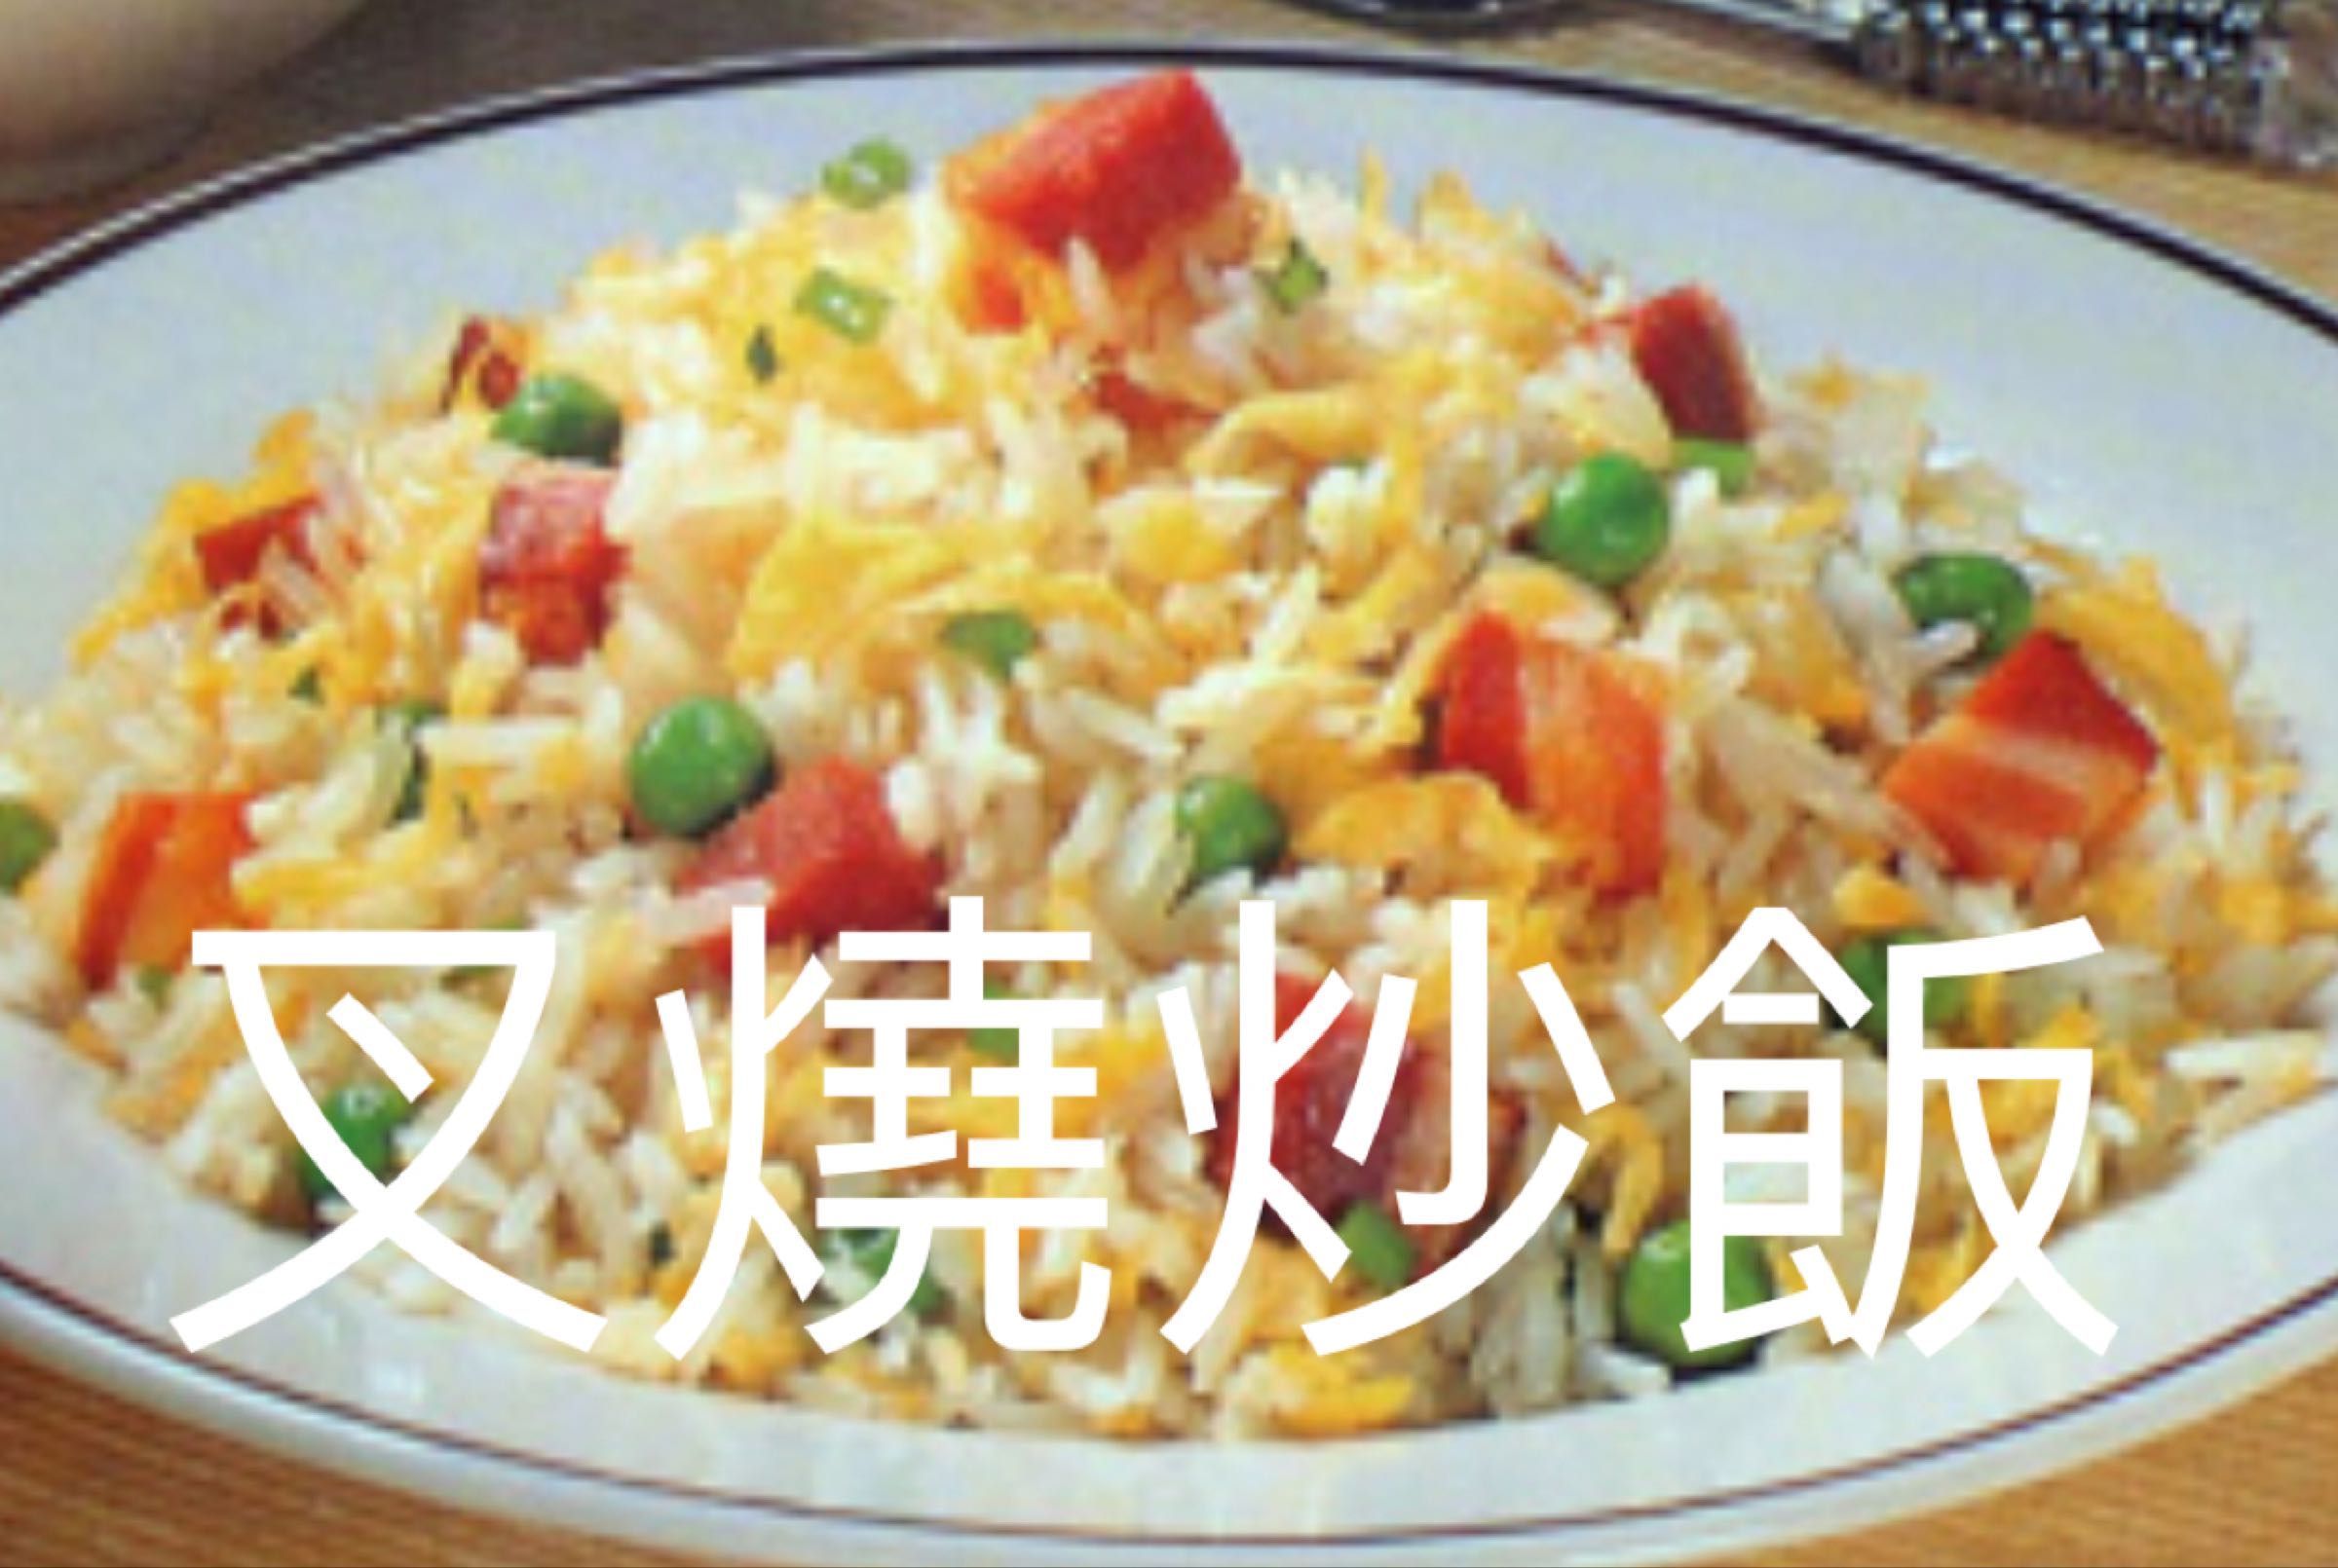 叉燒炒飯 BBQ Pork Fried Rice